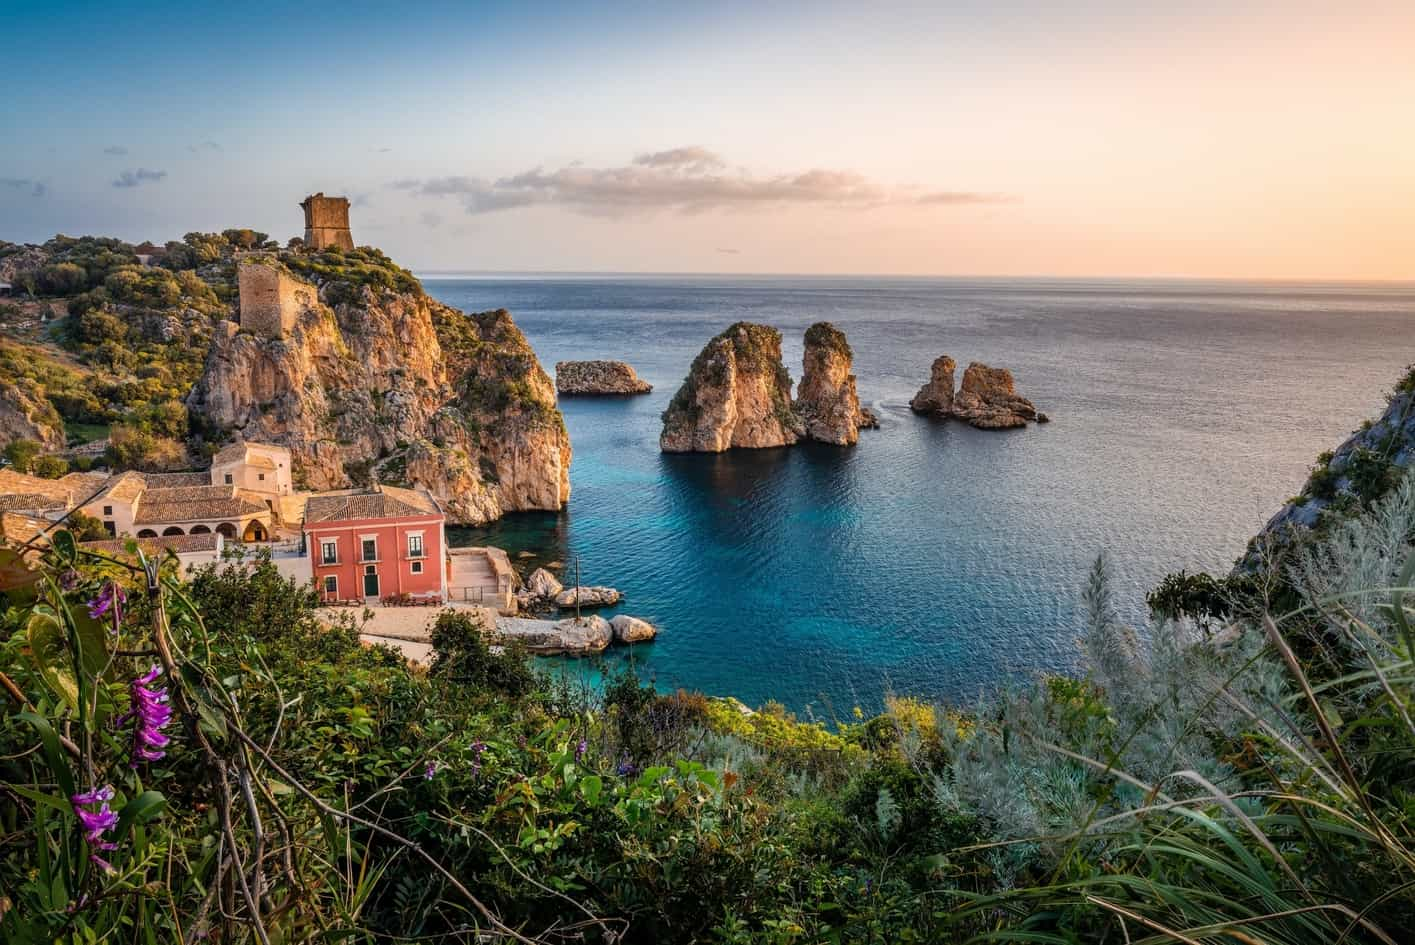 Italy reopening borders to tourists